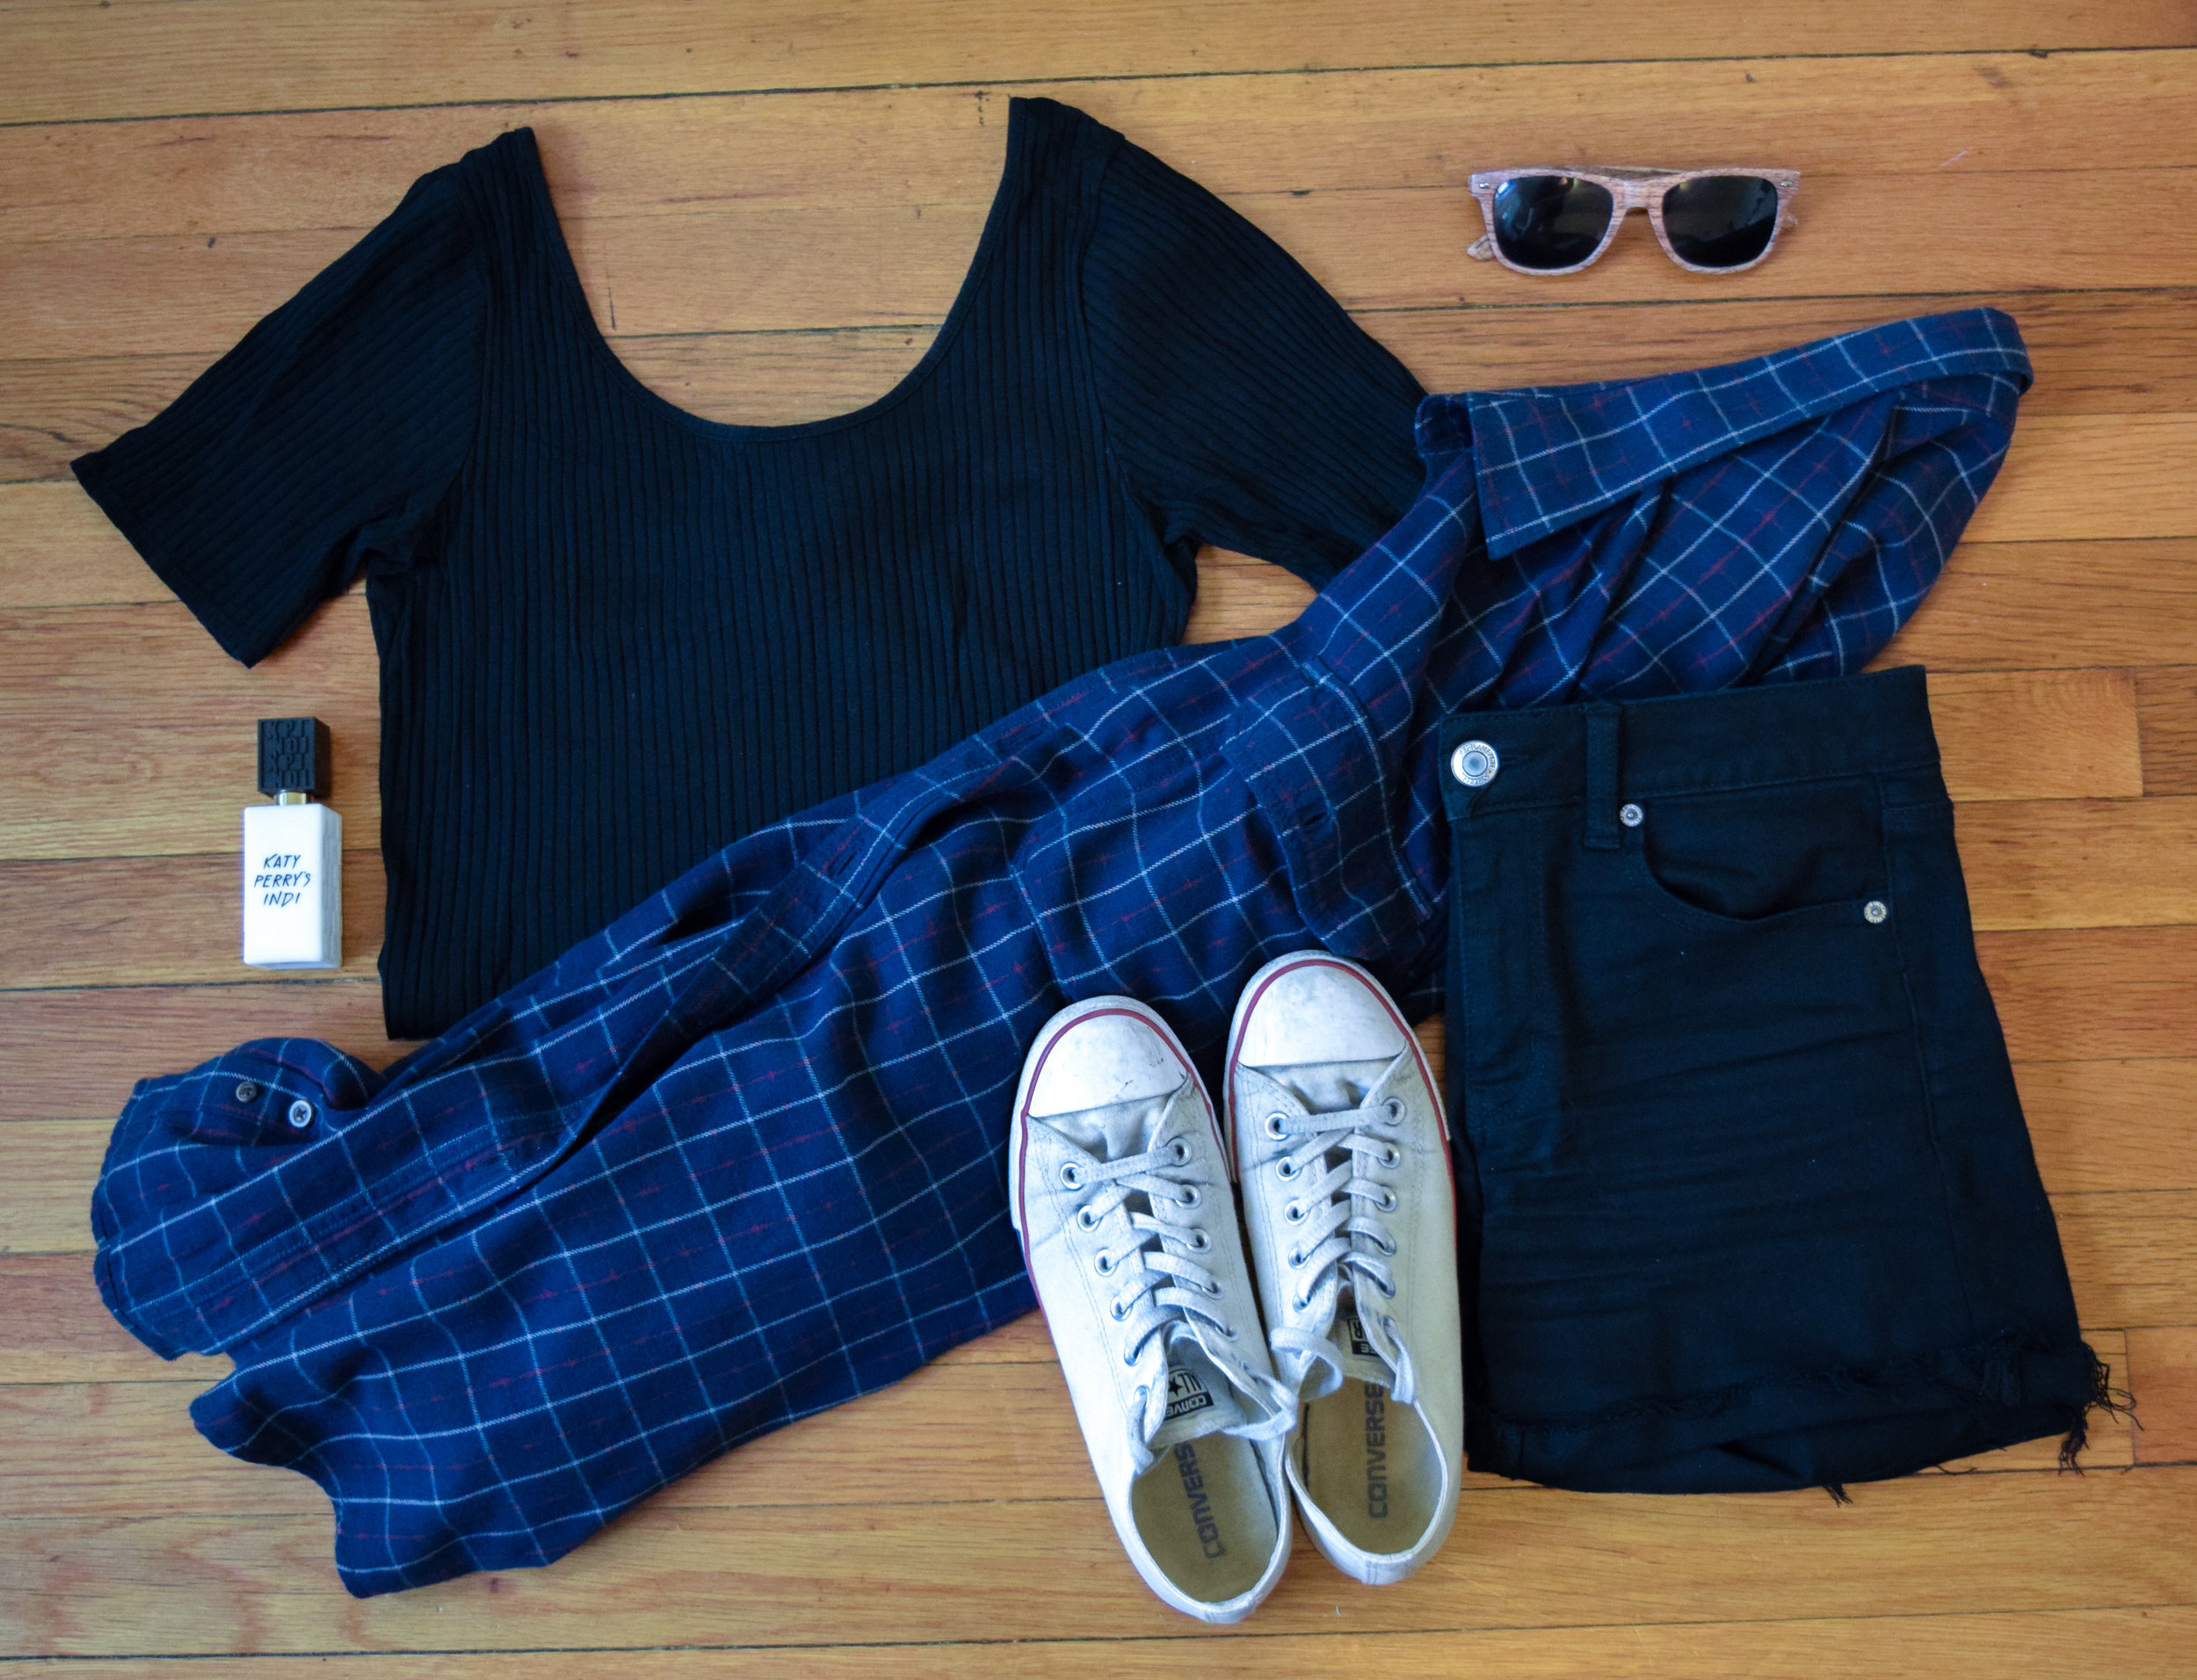 flannel (it's my dad's so i don't know, i'm sorry!).  bodysuit .  shorts .  sneakers .  perfume .  sunglasses  (similar, mine are lighter!).